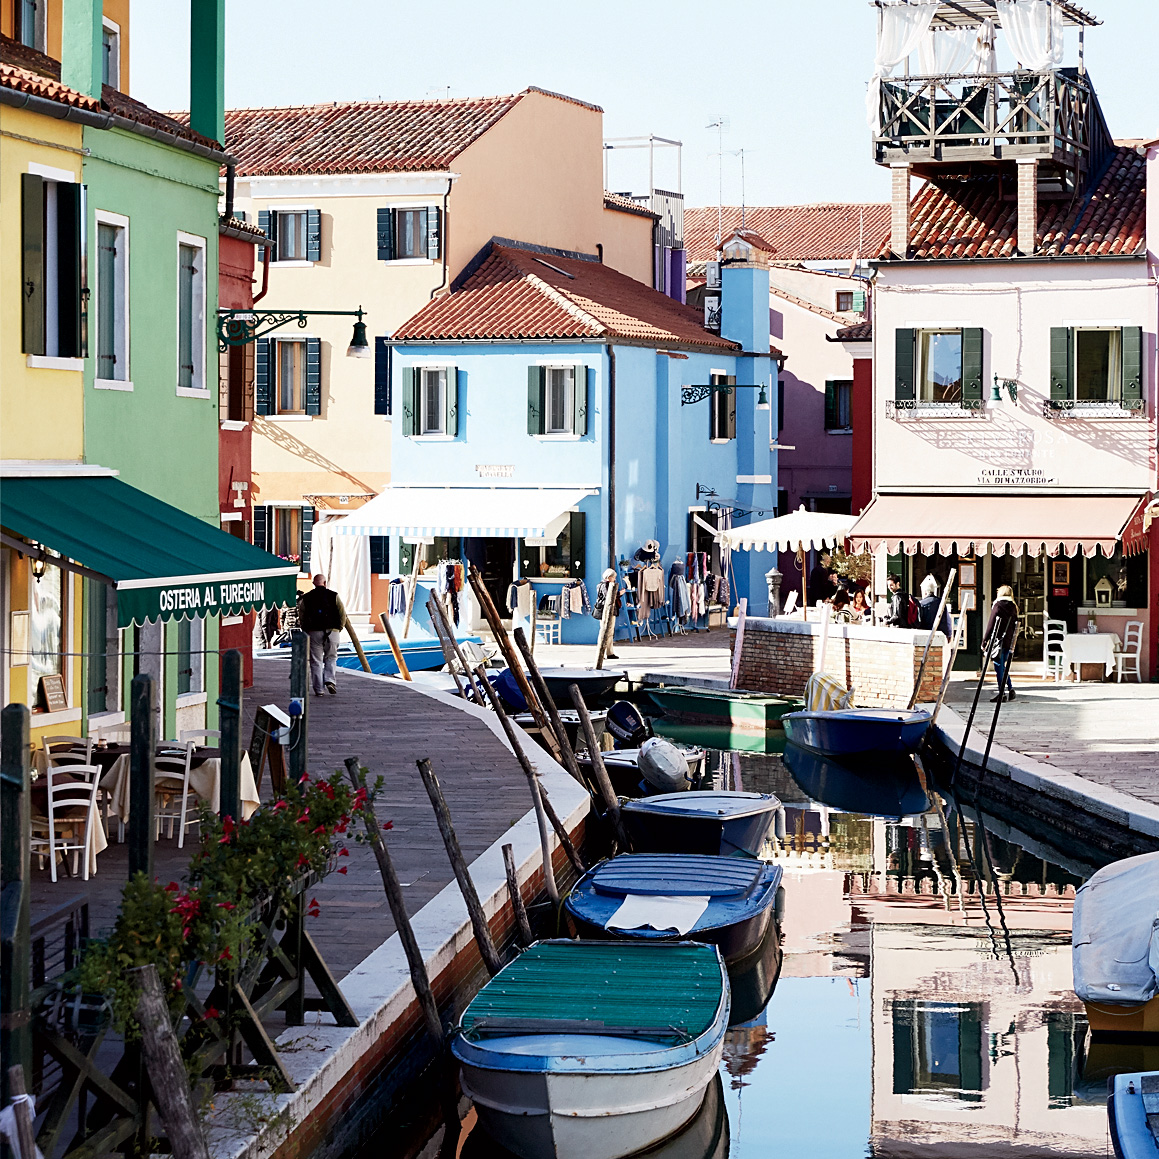 The Other Side of Venice